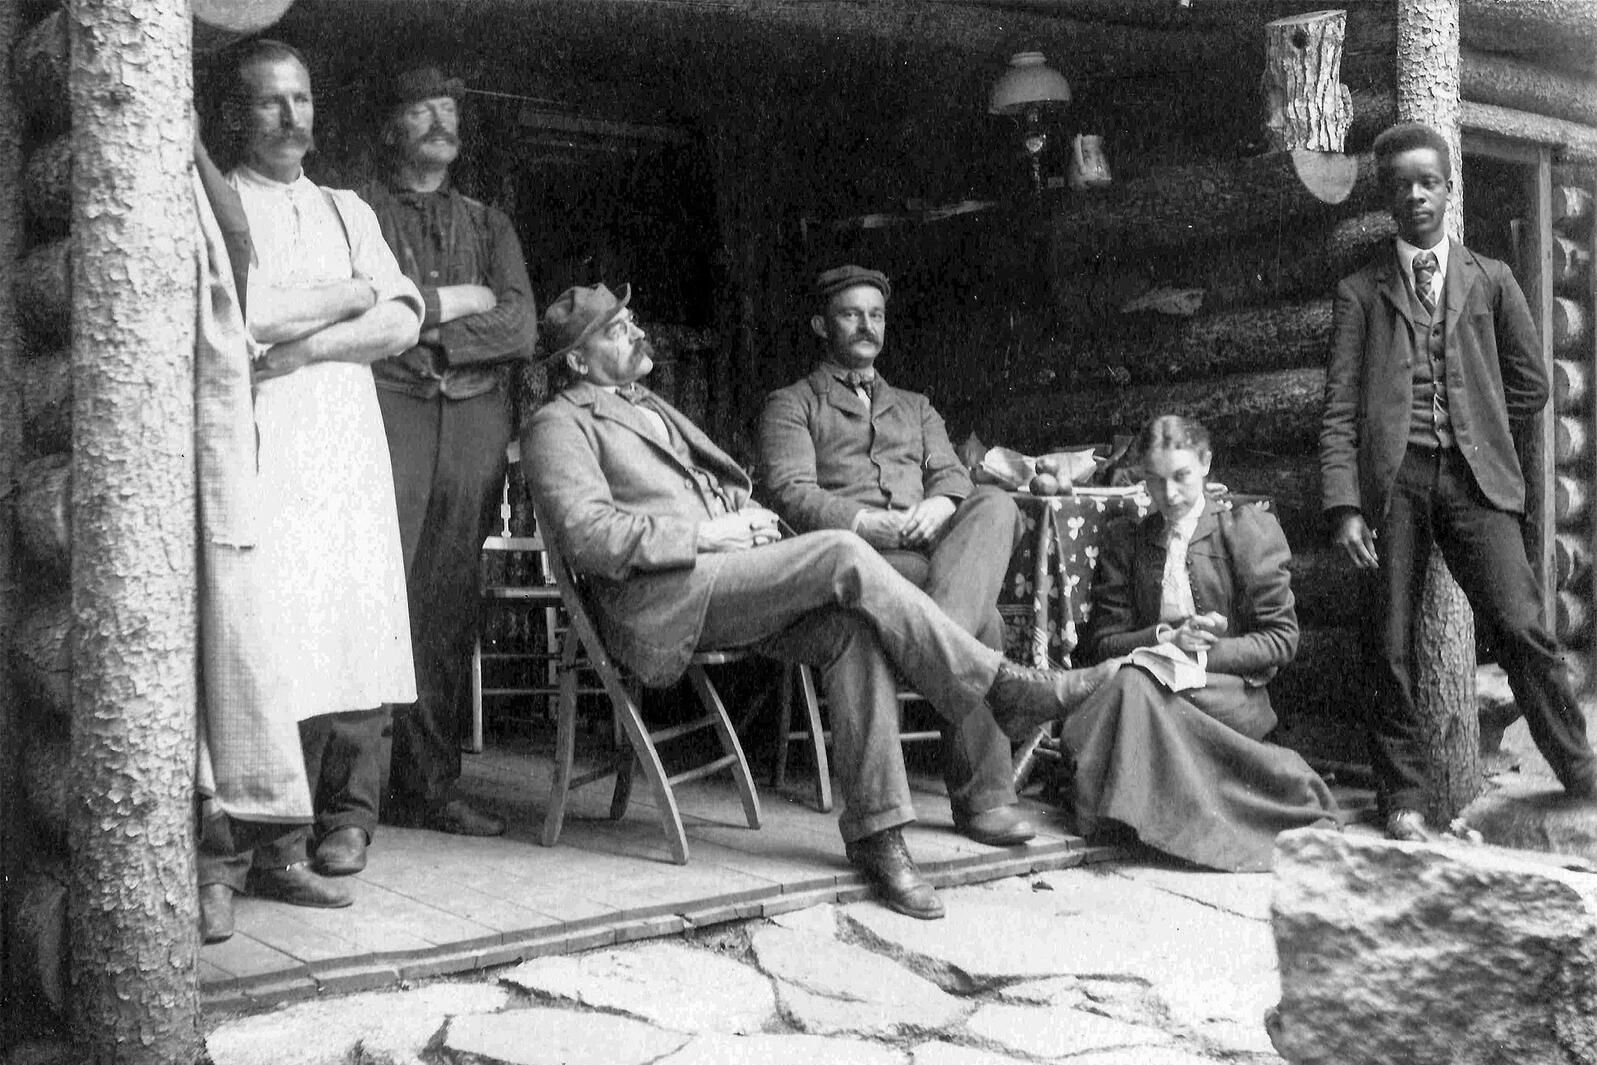 Robert A. Gilbert, far right, at William Brewster's cabin at Pine Point, Umbagog Lake, Maine. Mass Audubon Collection